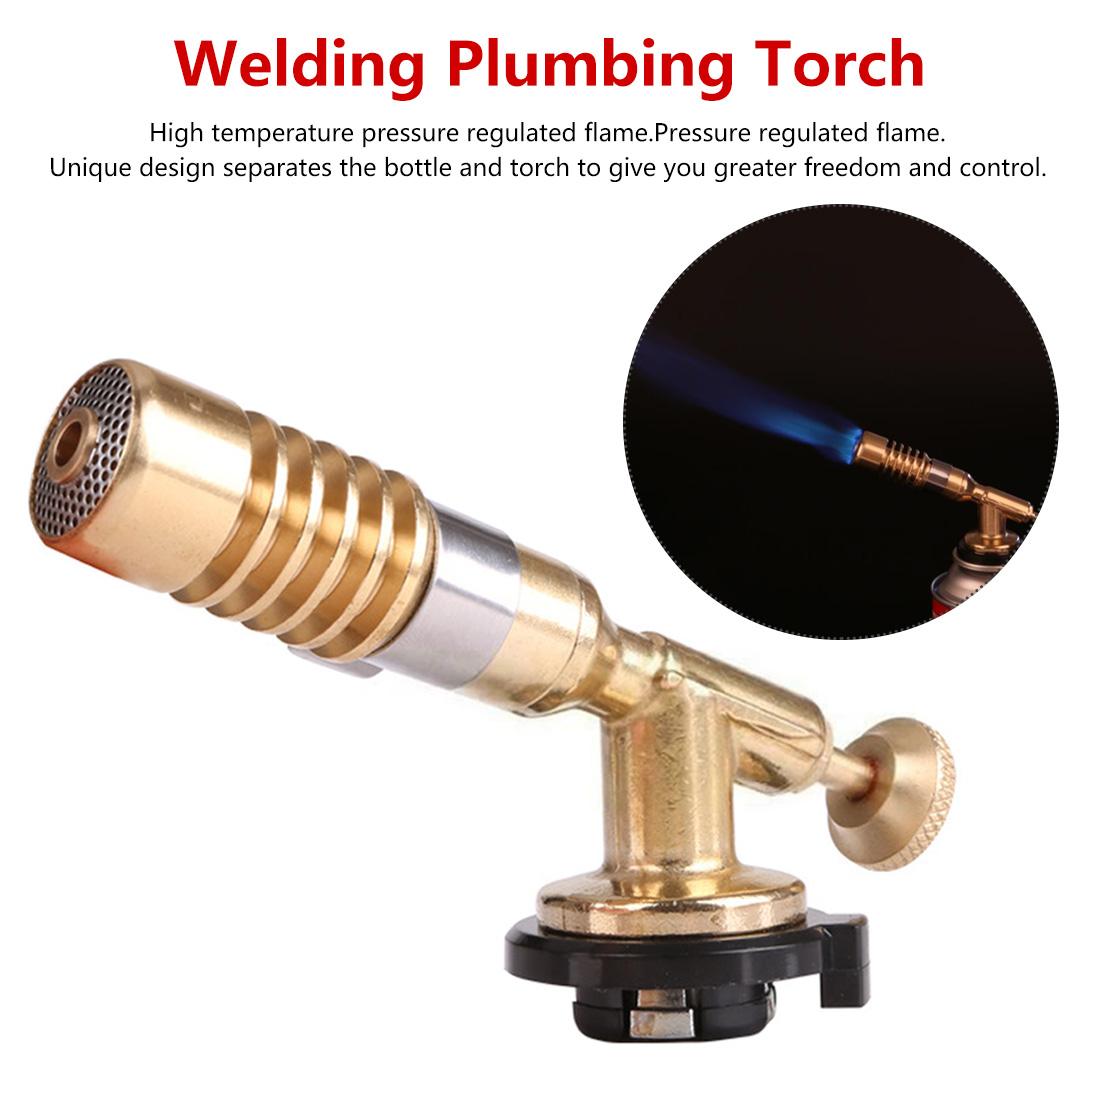 Adjustable Temperature Brass Gas Turbo Torch Aluminum Brazing Propane Weld Plumbing